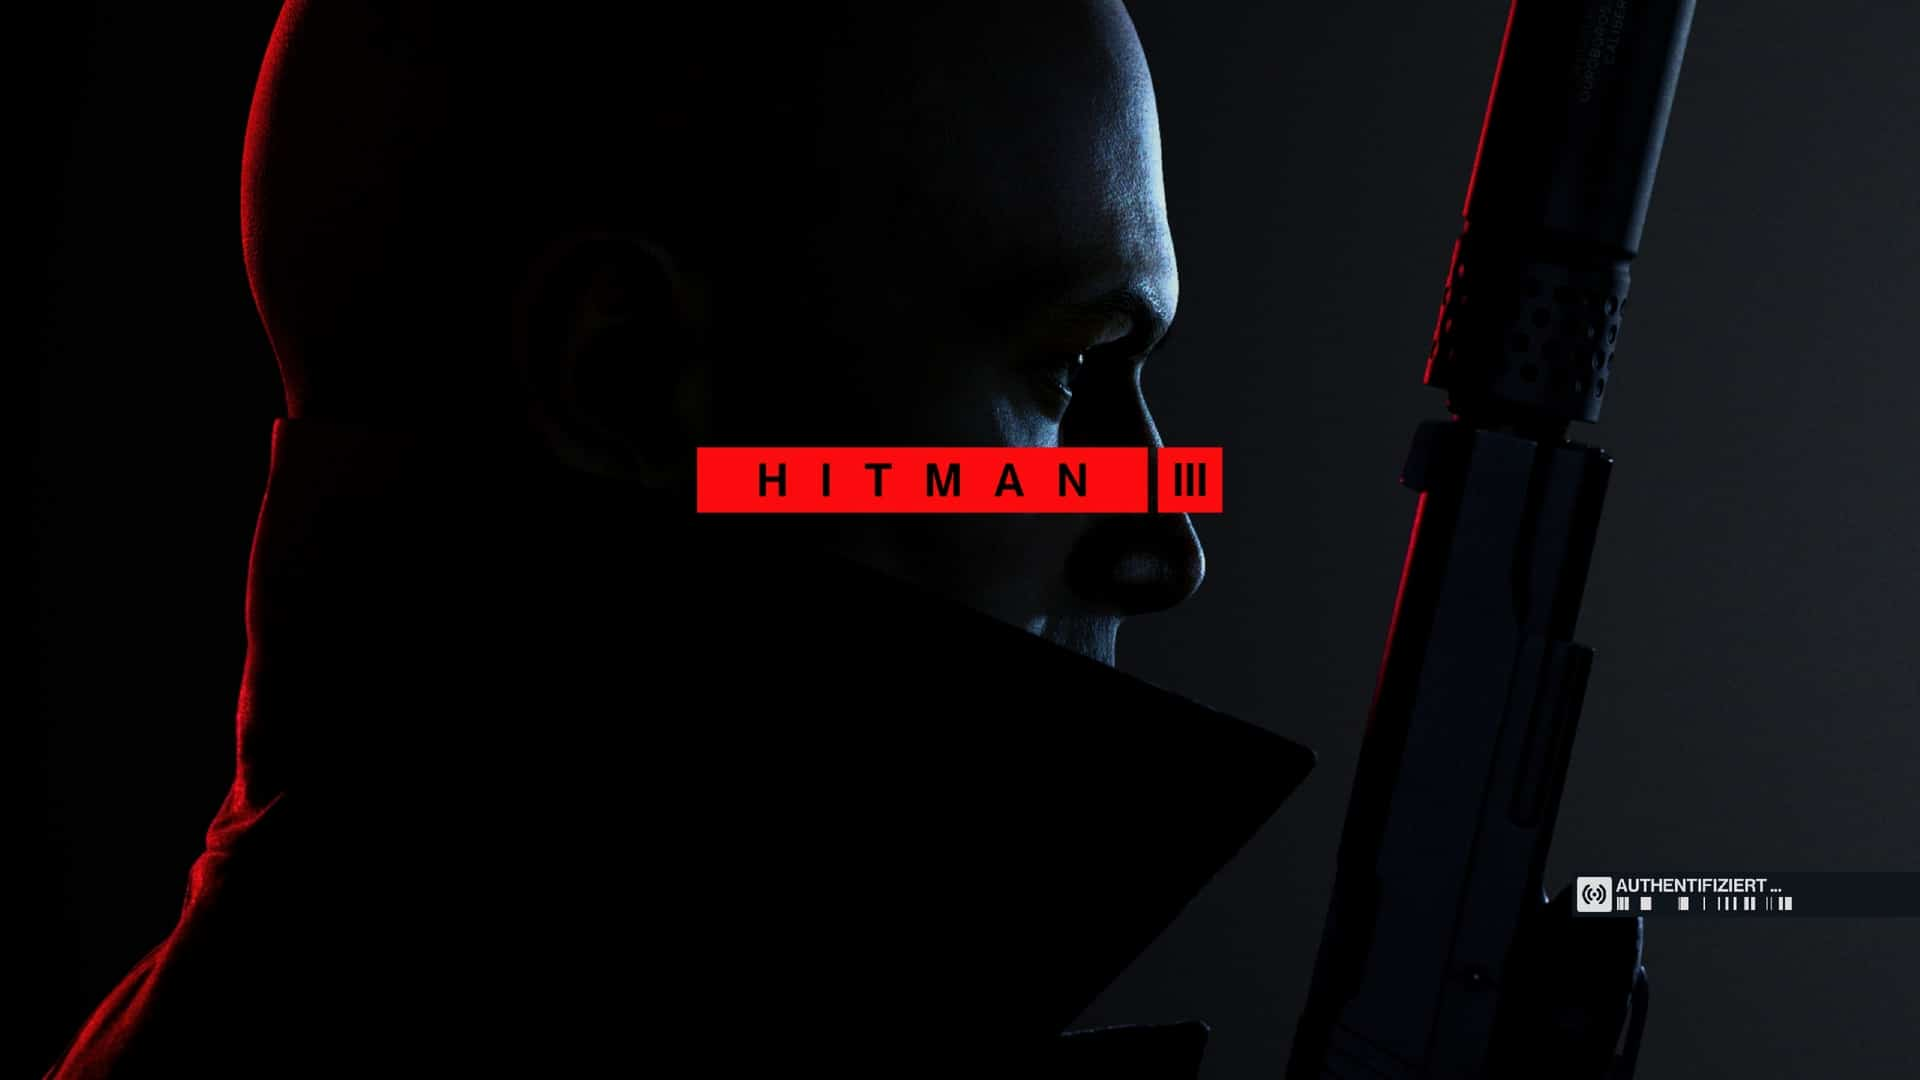 Hitman 3 Title © IO Interactive Screenshot DailyGame